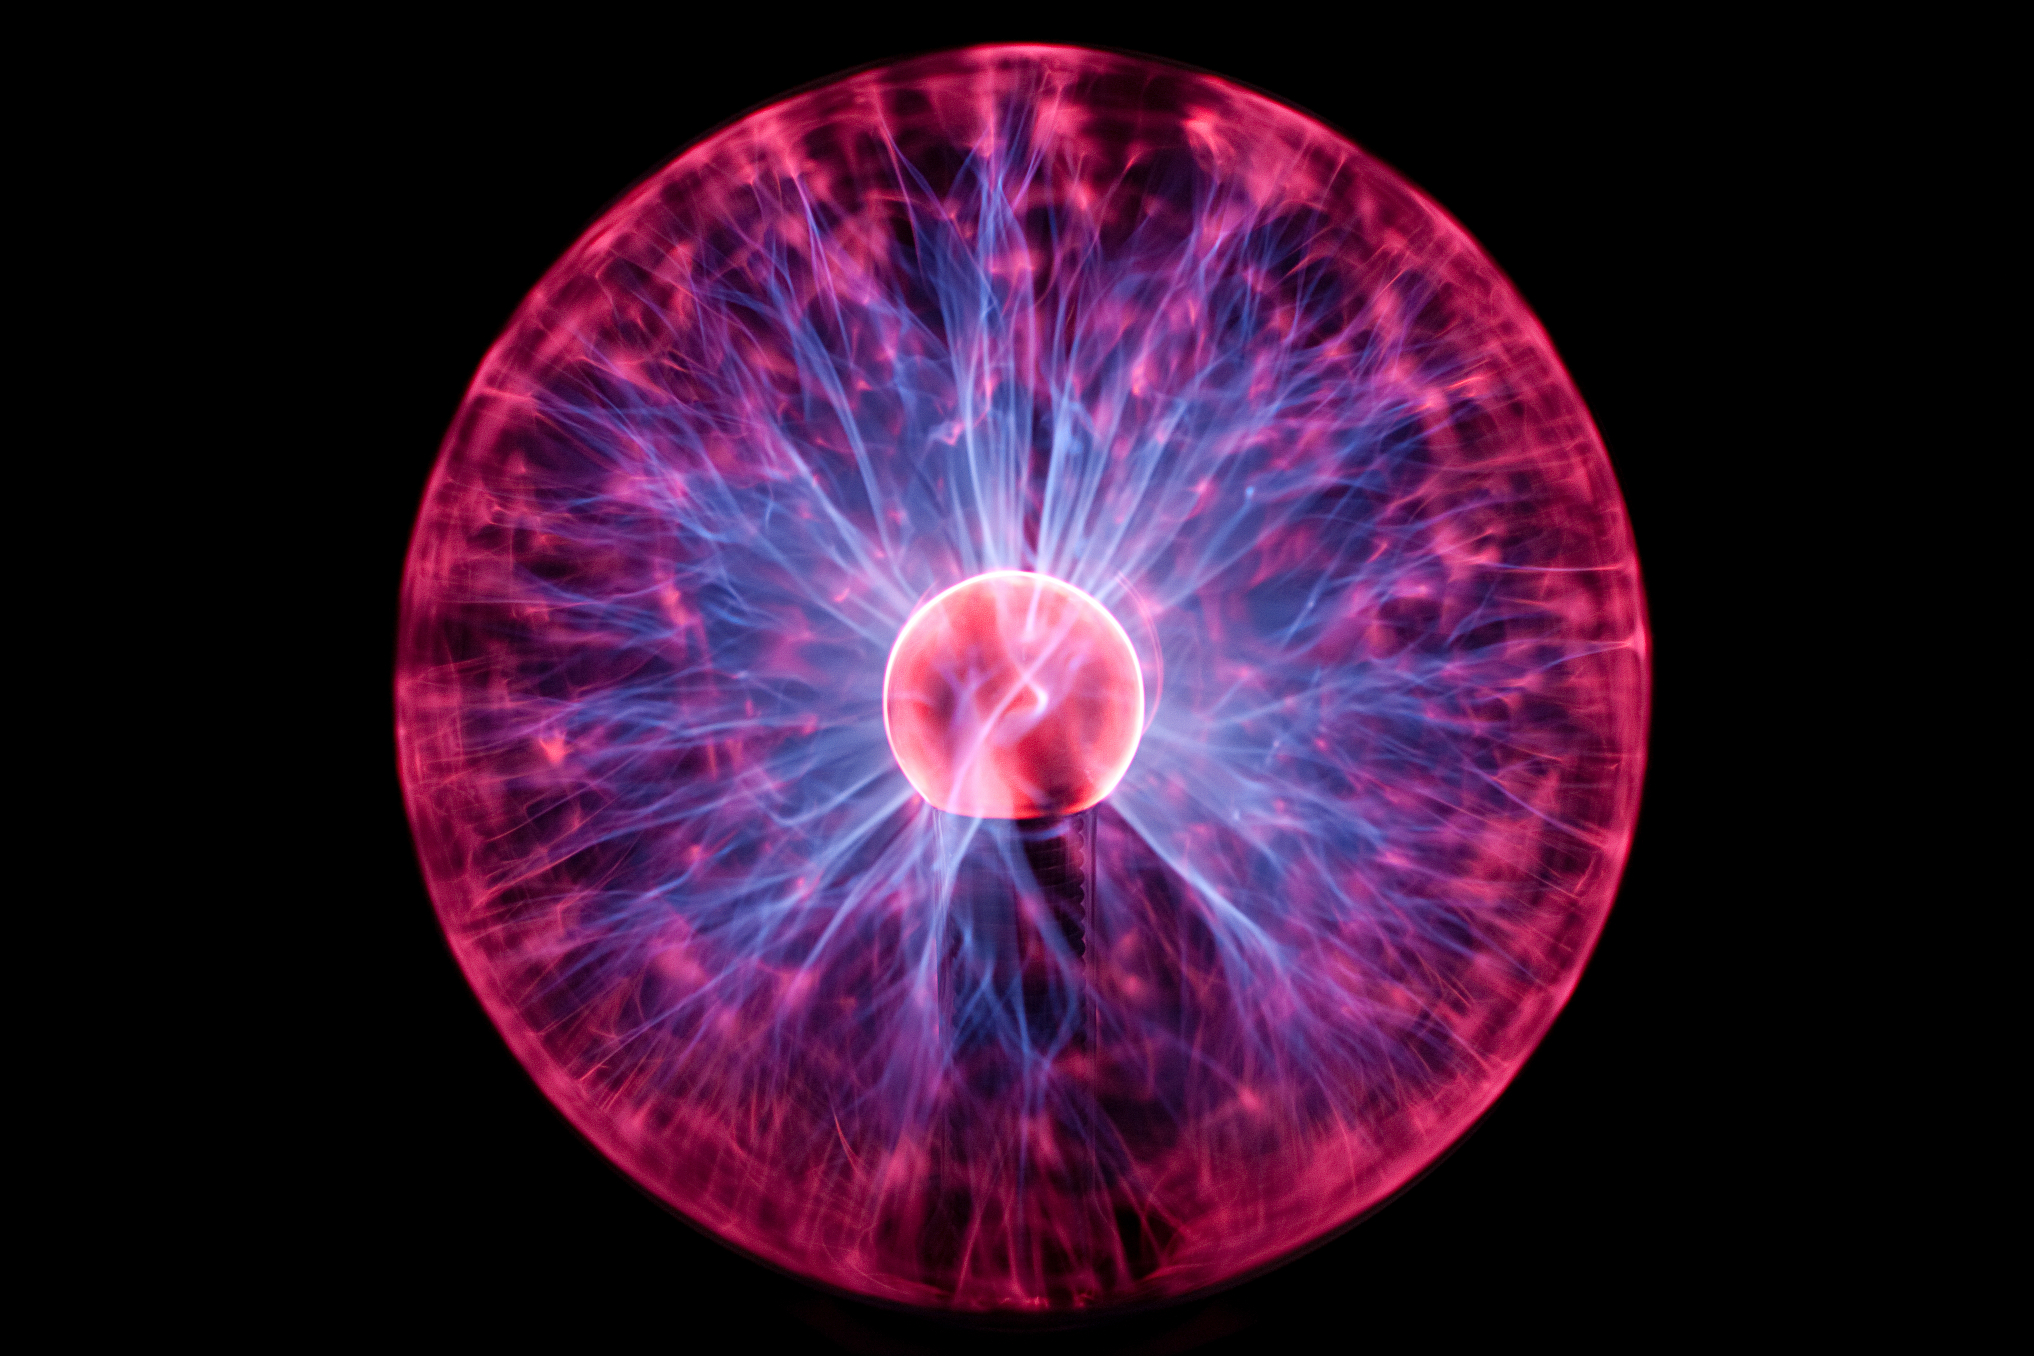 File Plasma Ball Jpg Wikimedia Commons